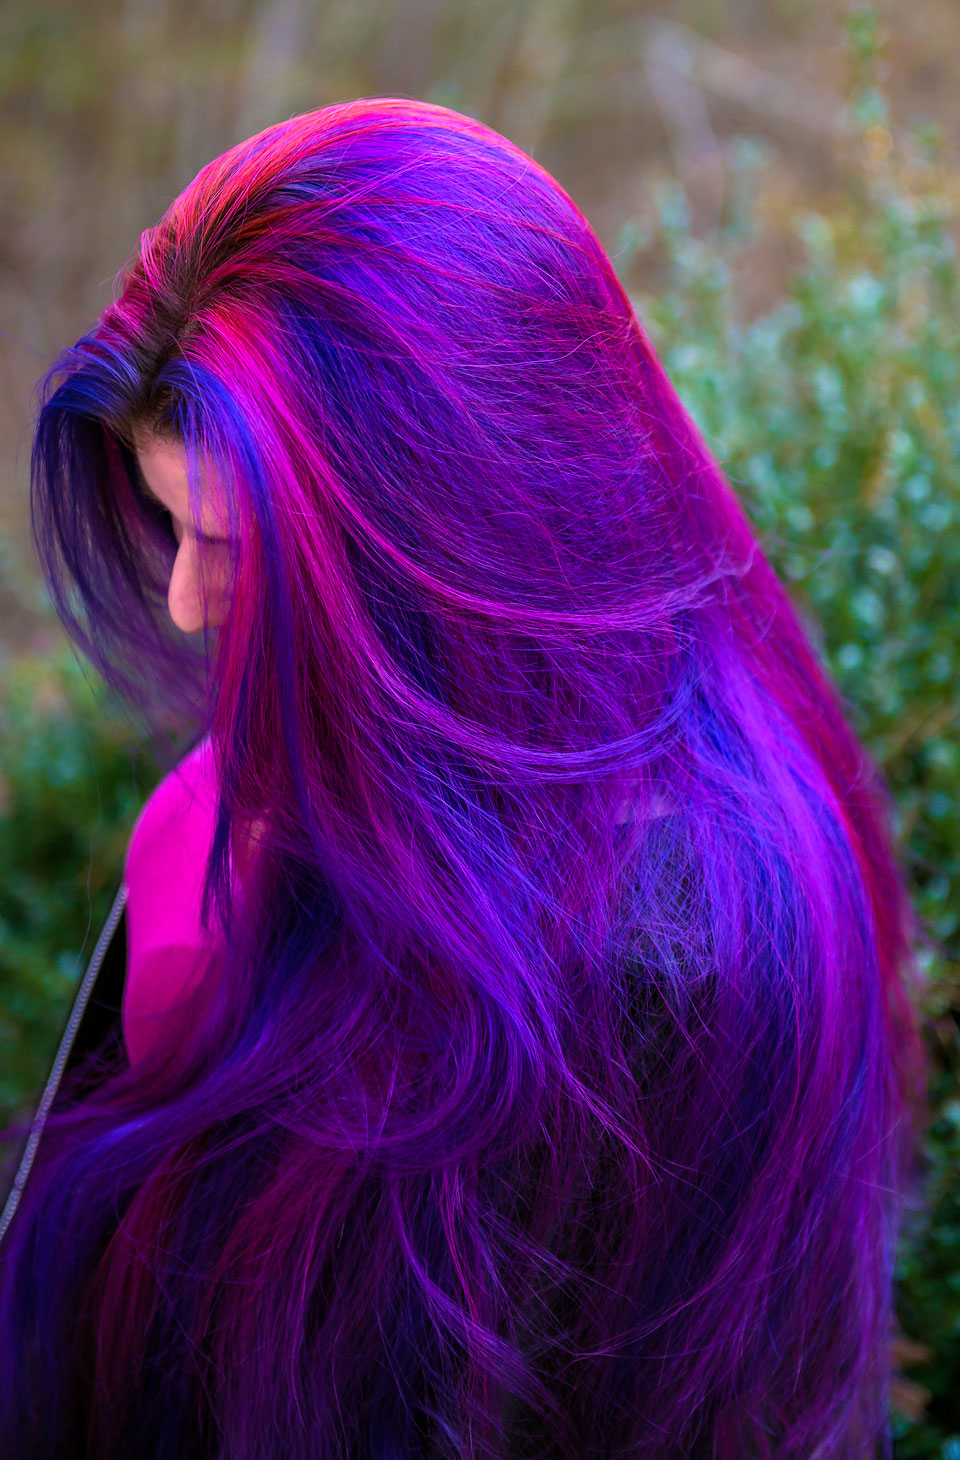 Rainbow hair multi colored hair manic panic dye hard lizzy davis virally recognized long purple and pink hair by lizzy davis using manic panic deep purple dream junglespirit Image collections